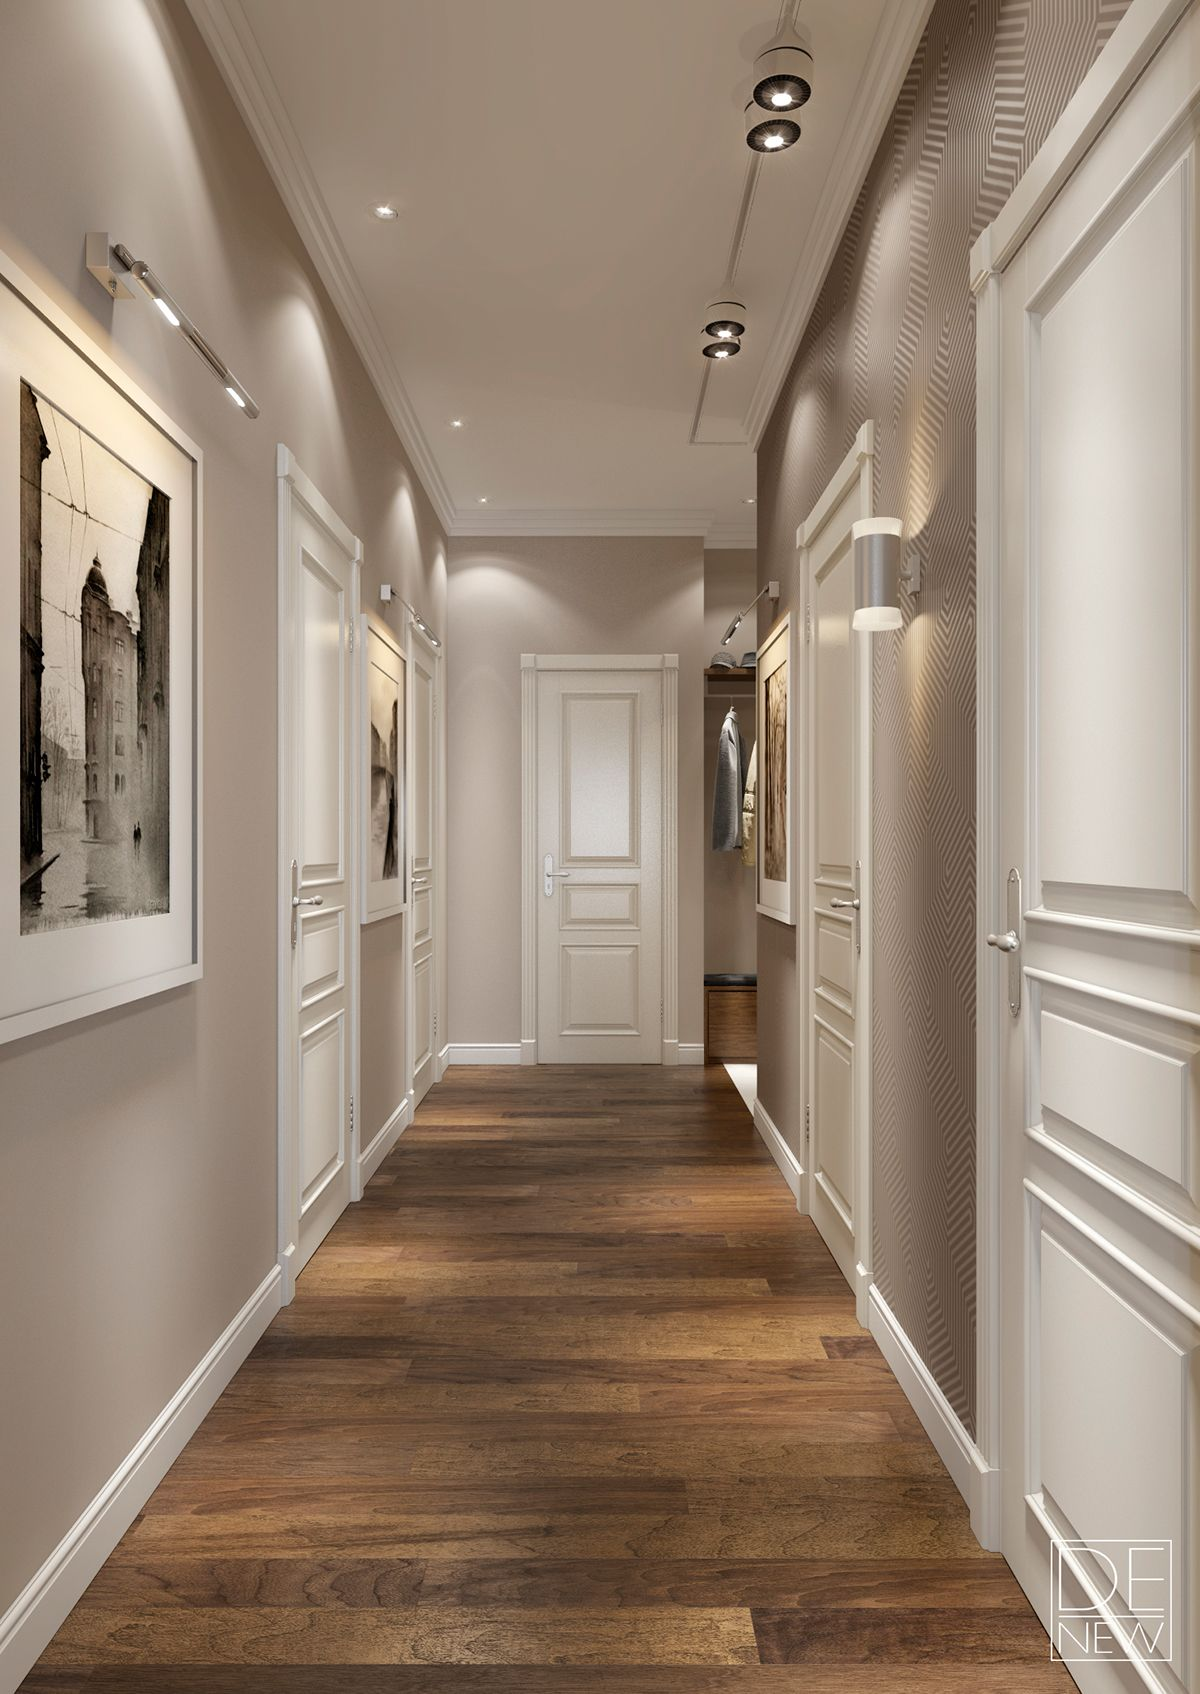 Apartment in Moscow on Behance | corridor | Pinterest | Flure ...